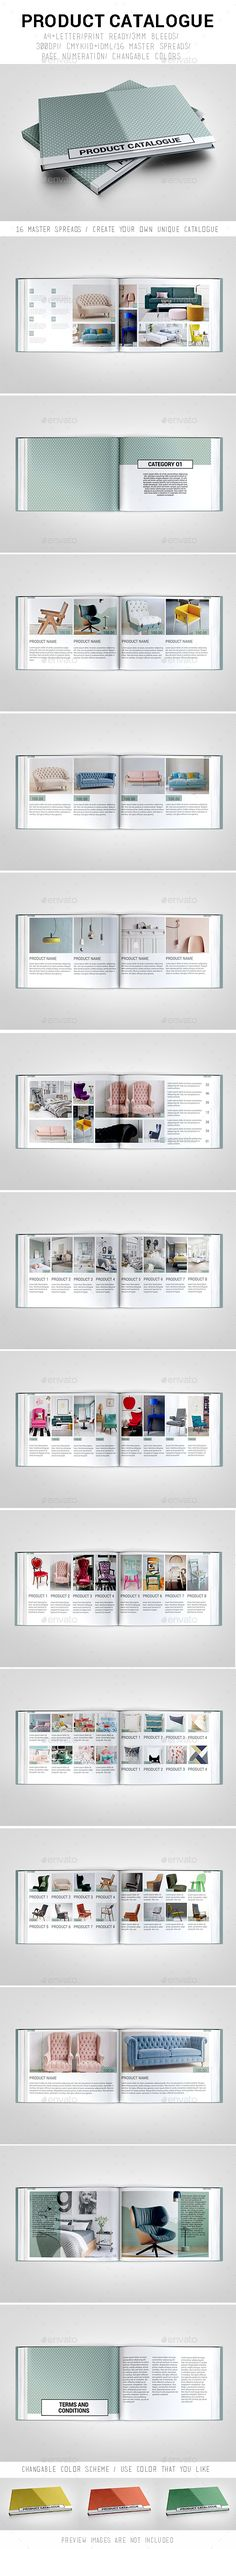 Product Catalogue Template InDesign INDD